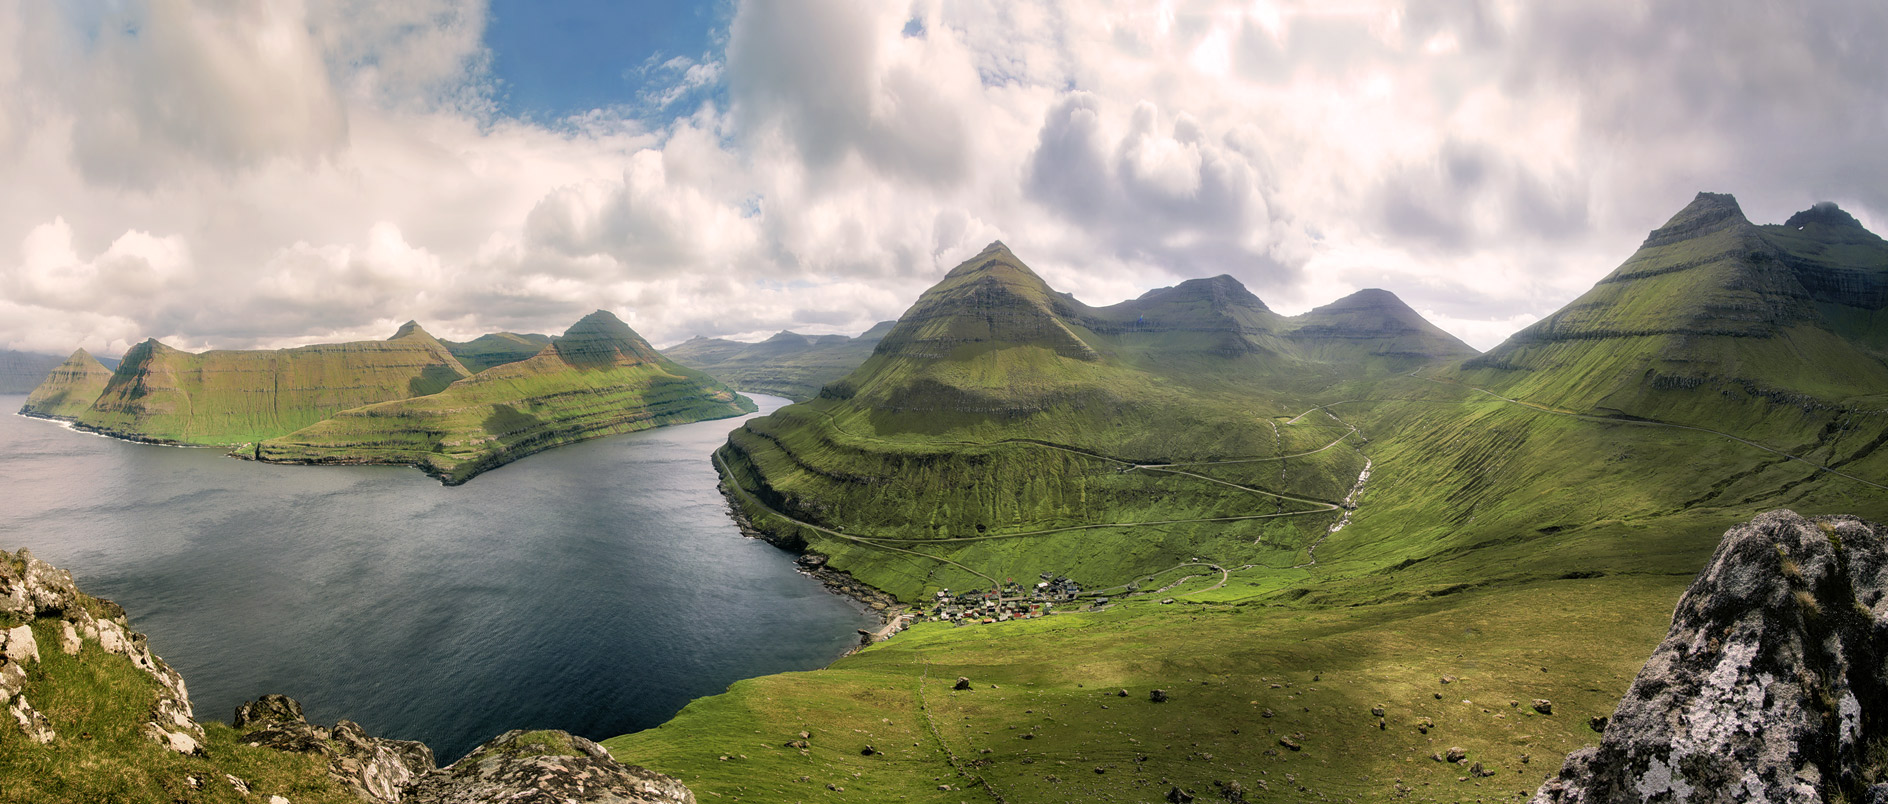 Faroe islands panorama view with the highest mountain